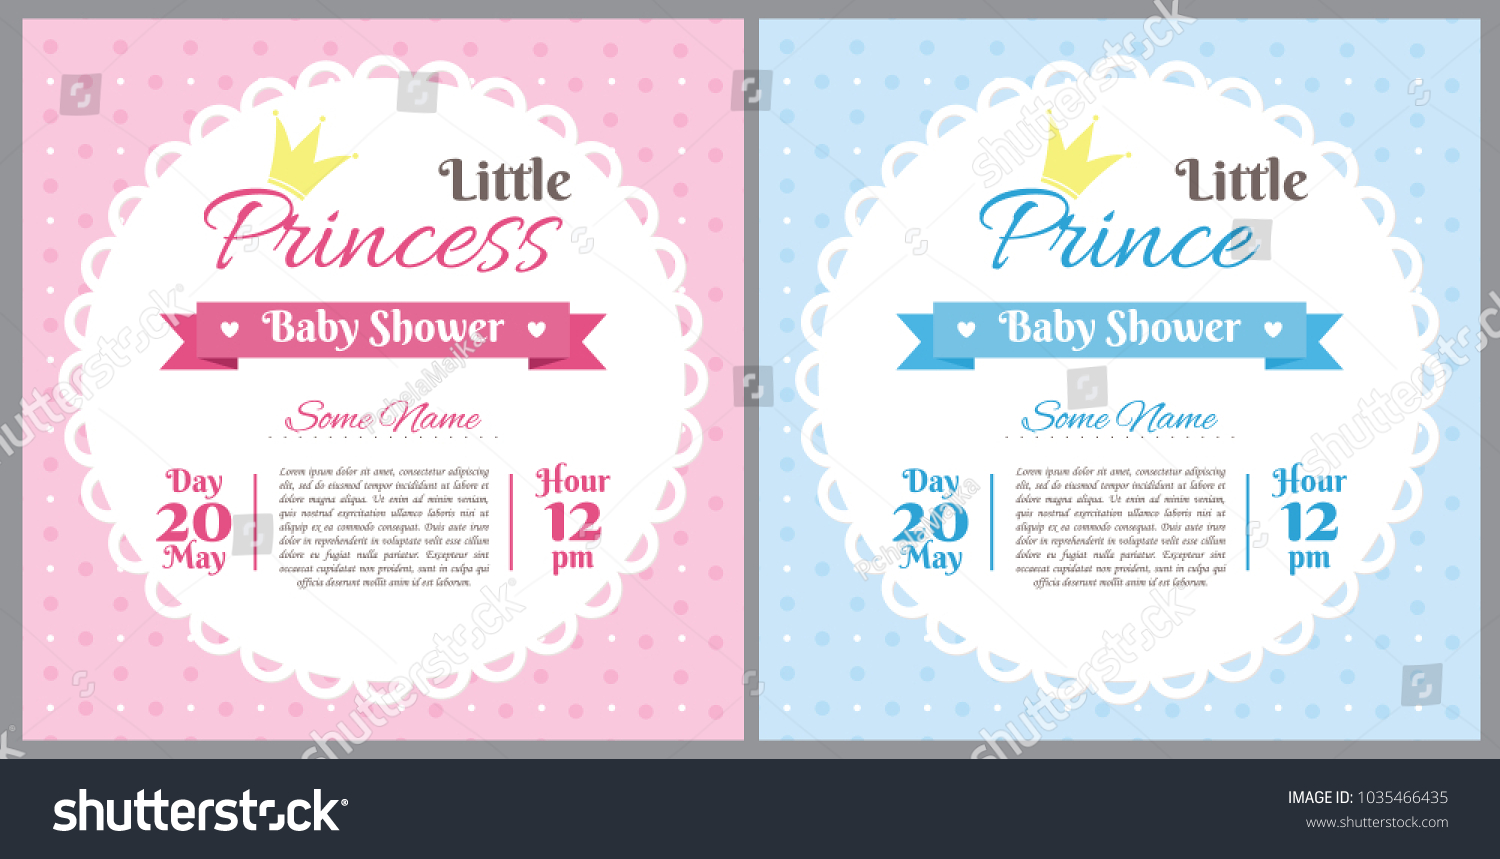 Set baby shower invitation card baby stock vector 1035466435 set of baby shower invitation card baby frame with stroller and stickers on striped background filmwisefo